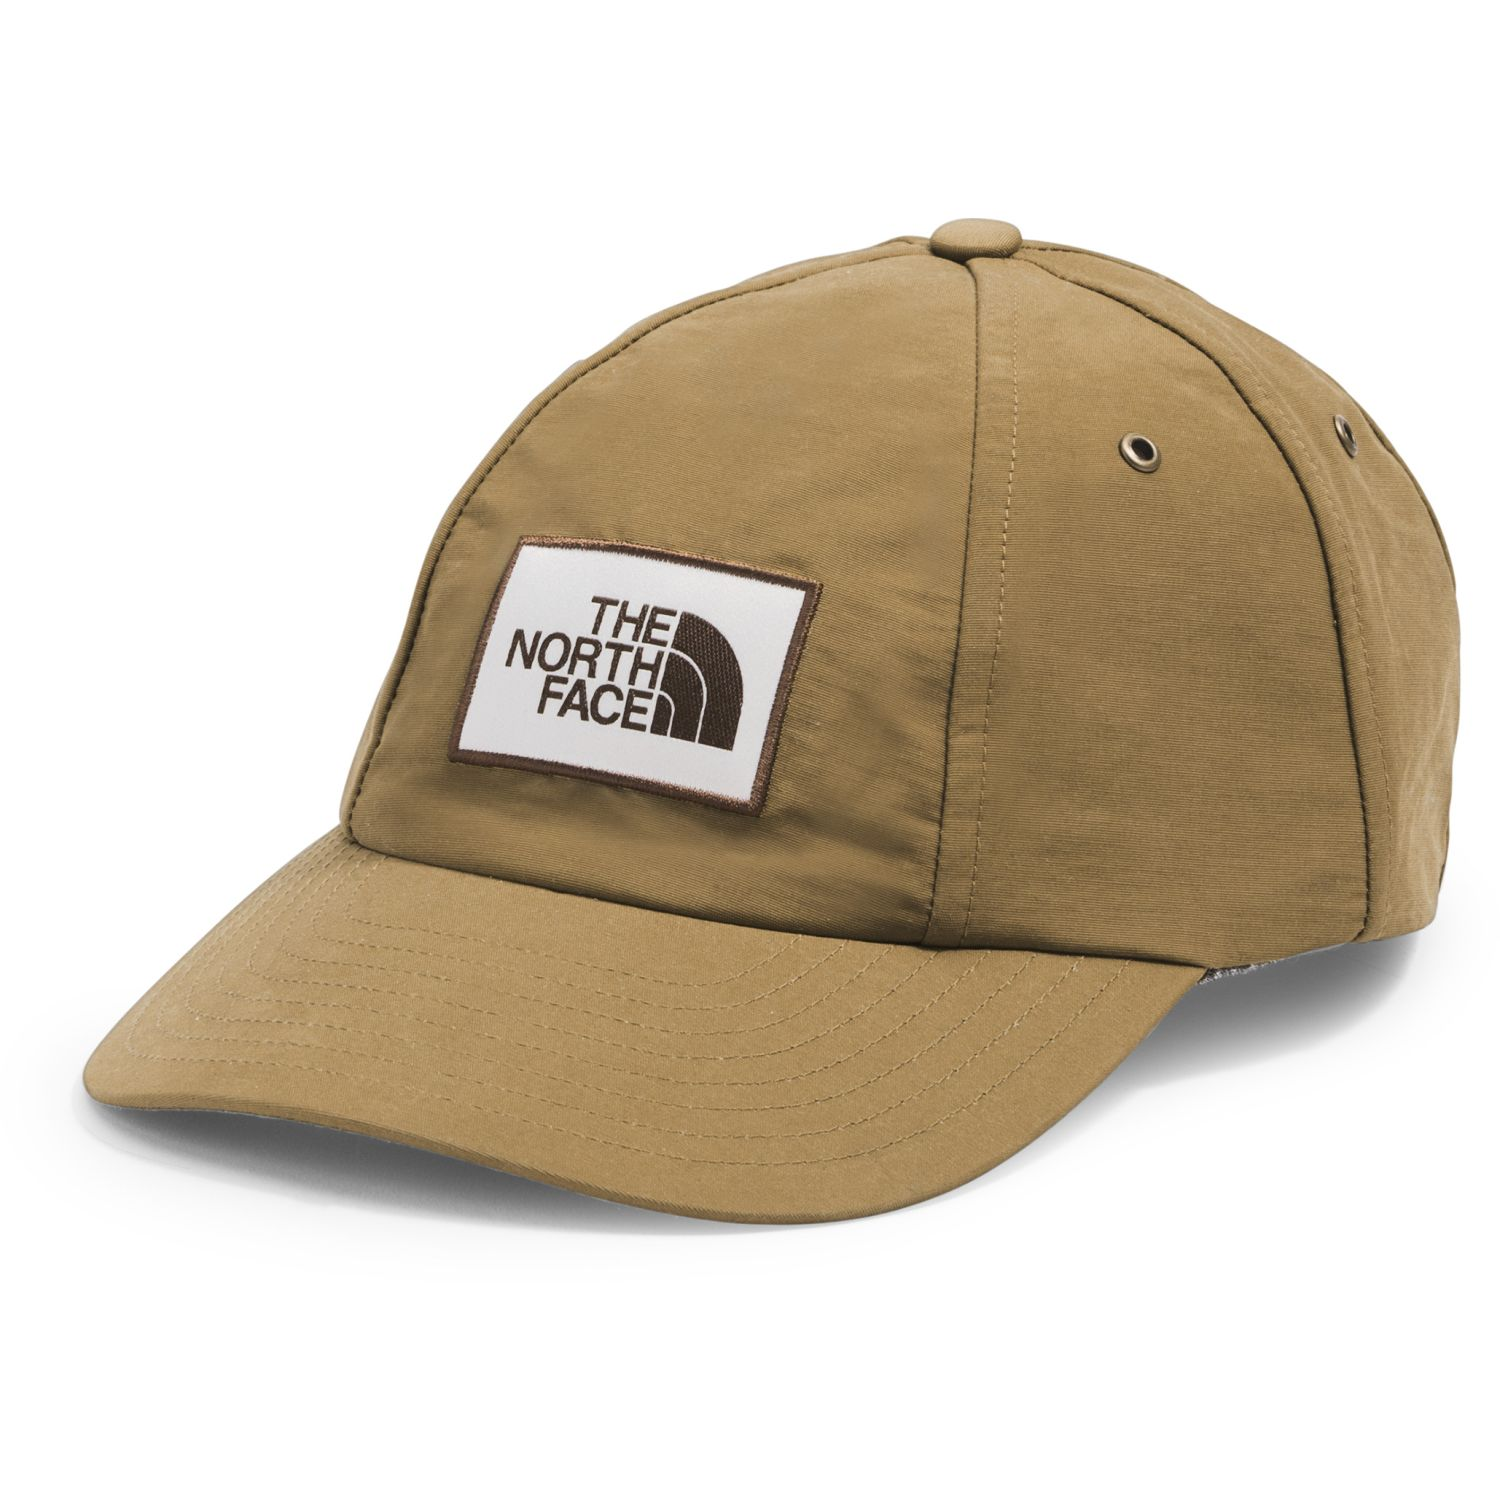 The North Face Berkeley 6 Panel Ball Cap Beige Gorras de béisbol